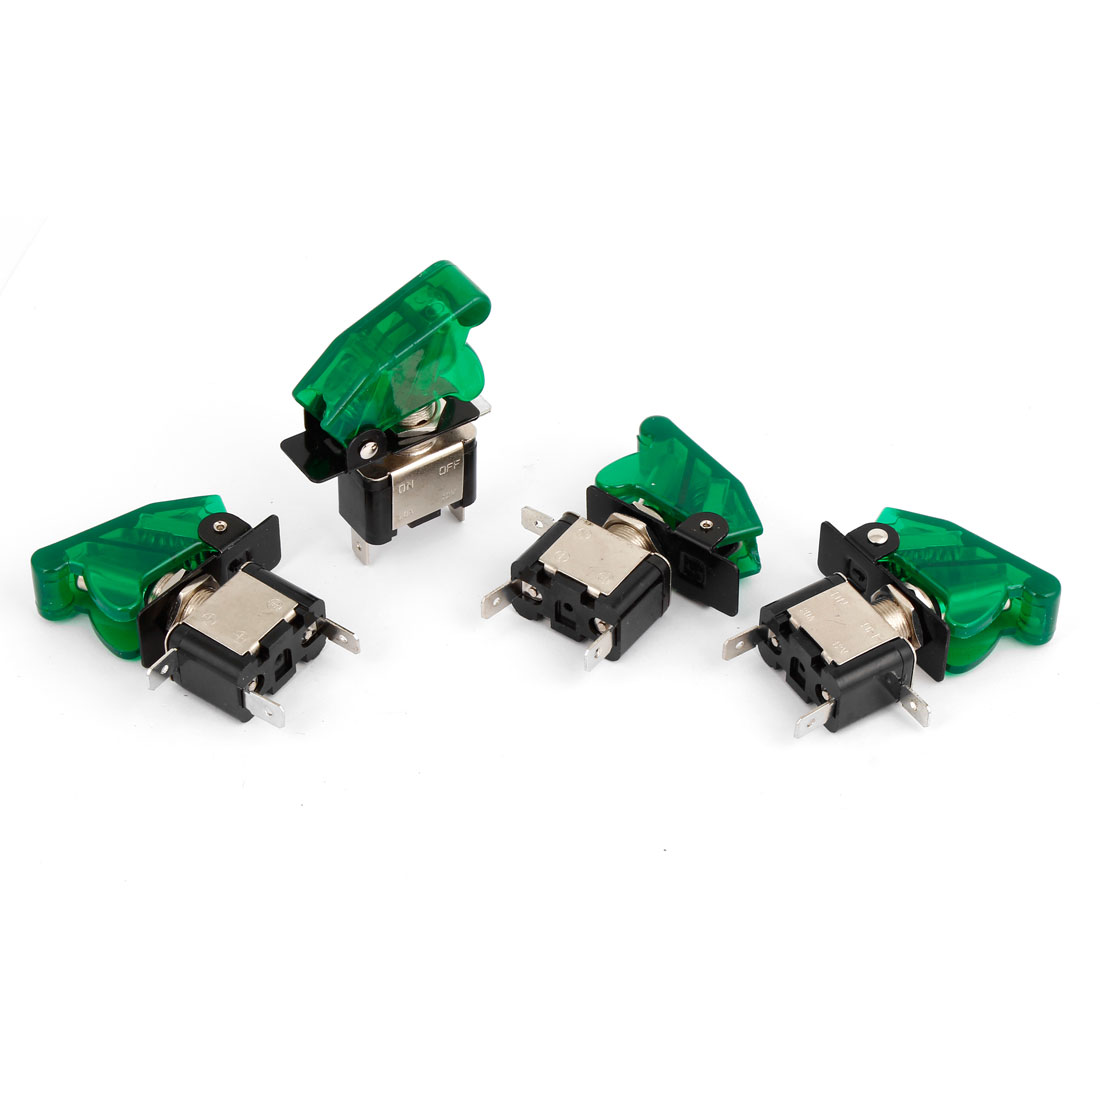 4 Pcs Green Lighted Toggle Switch 12V 20A ON OFF Car Truck Boat ATV Airplane